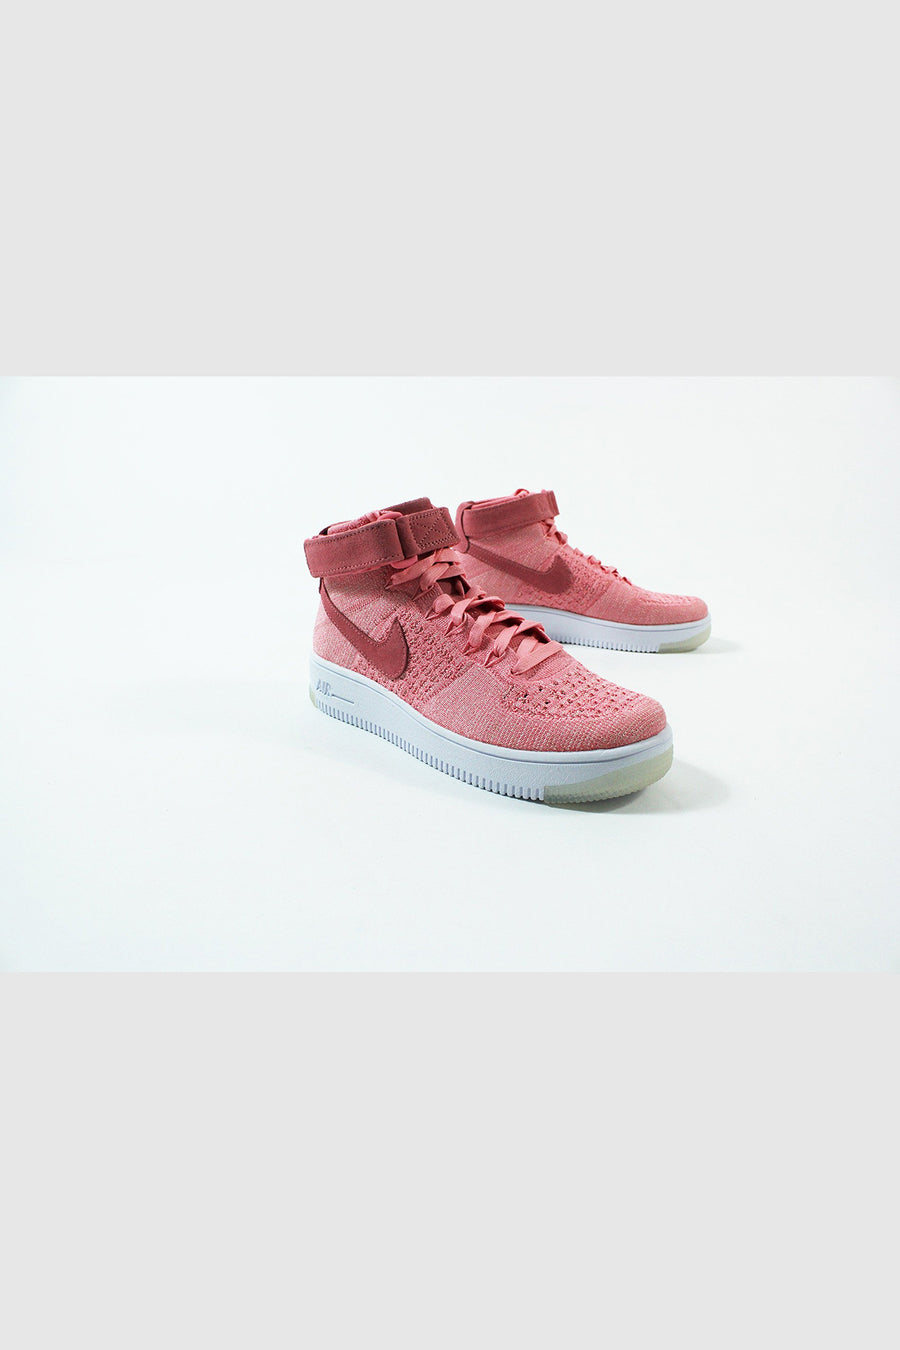 Nike - Air Force 1 Flyknit Women (Bright Melon)